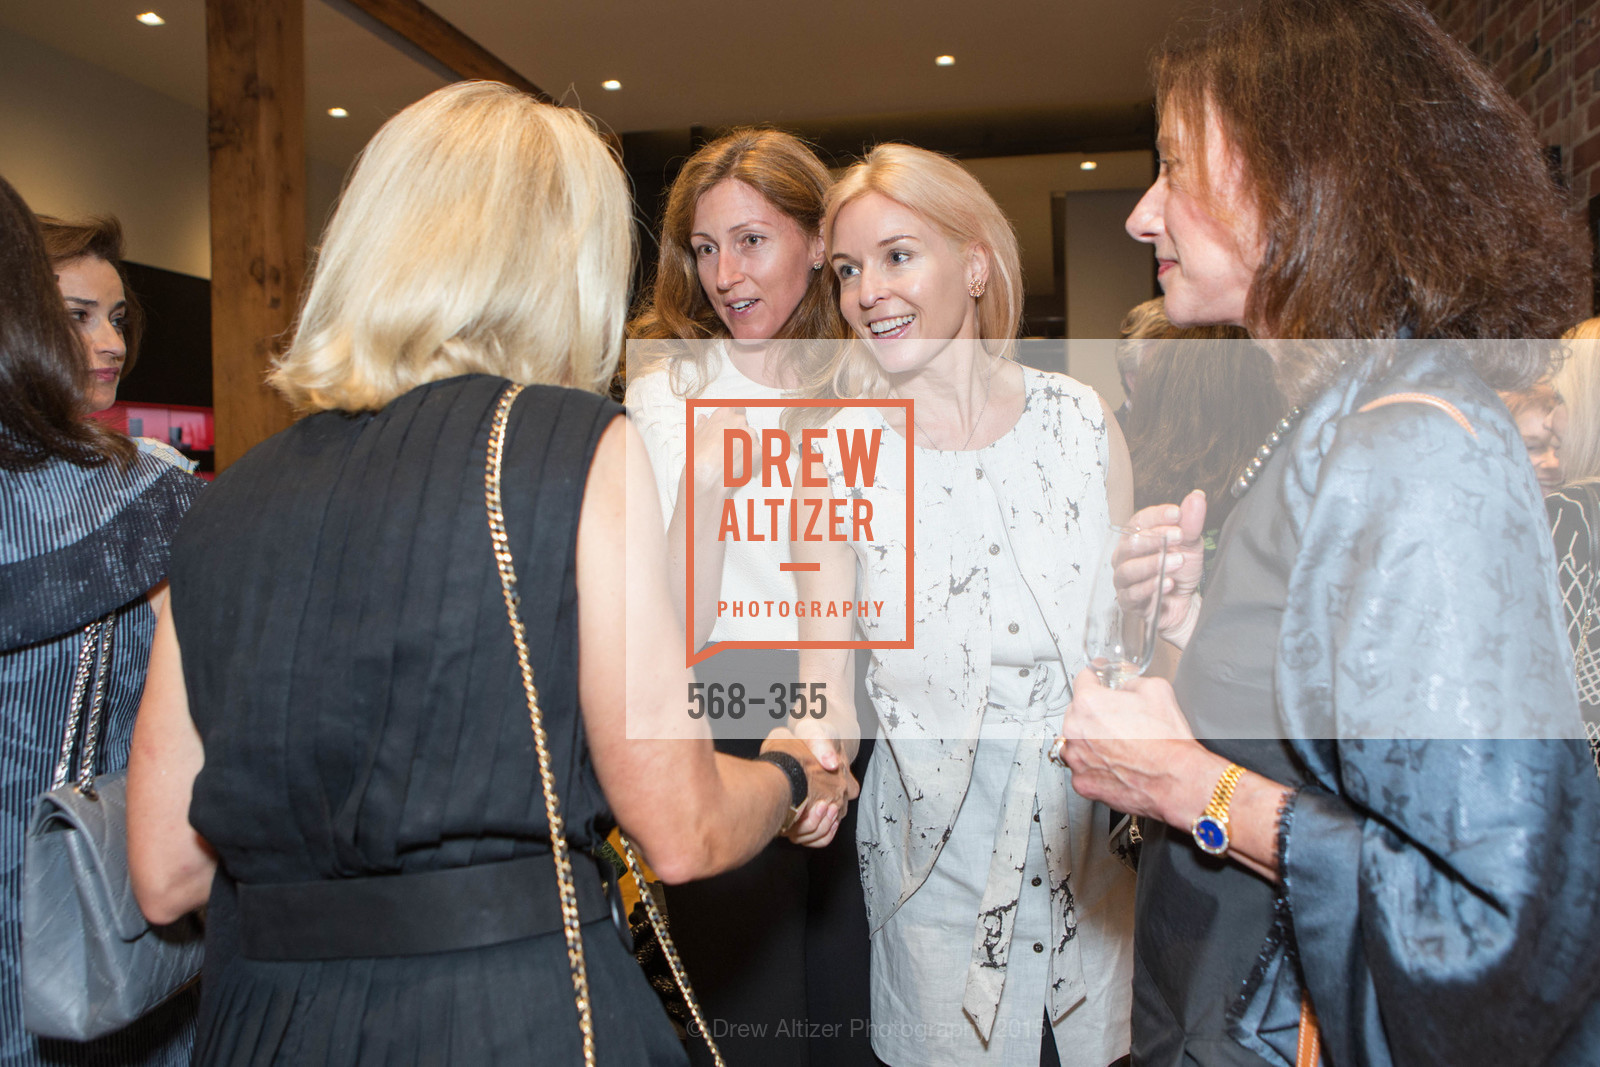 Extras, SFMOMA Contemporary Vision Award Launch Party, October 8th, 2015, Photo,Drew Altizer, Drew Altizer Photography, full-service agency, private events, San Francisco photographer, photographer california